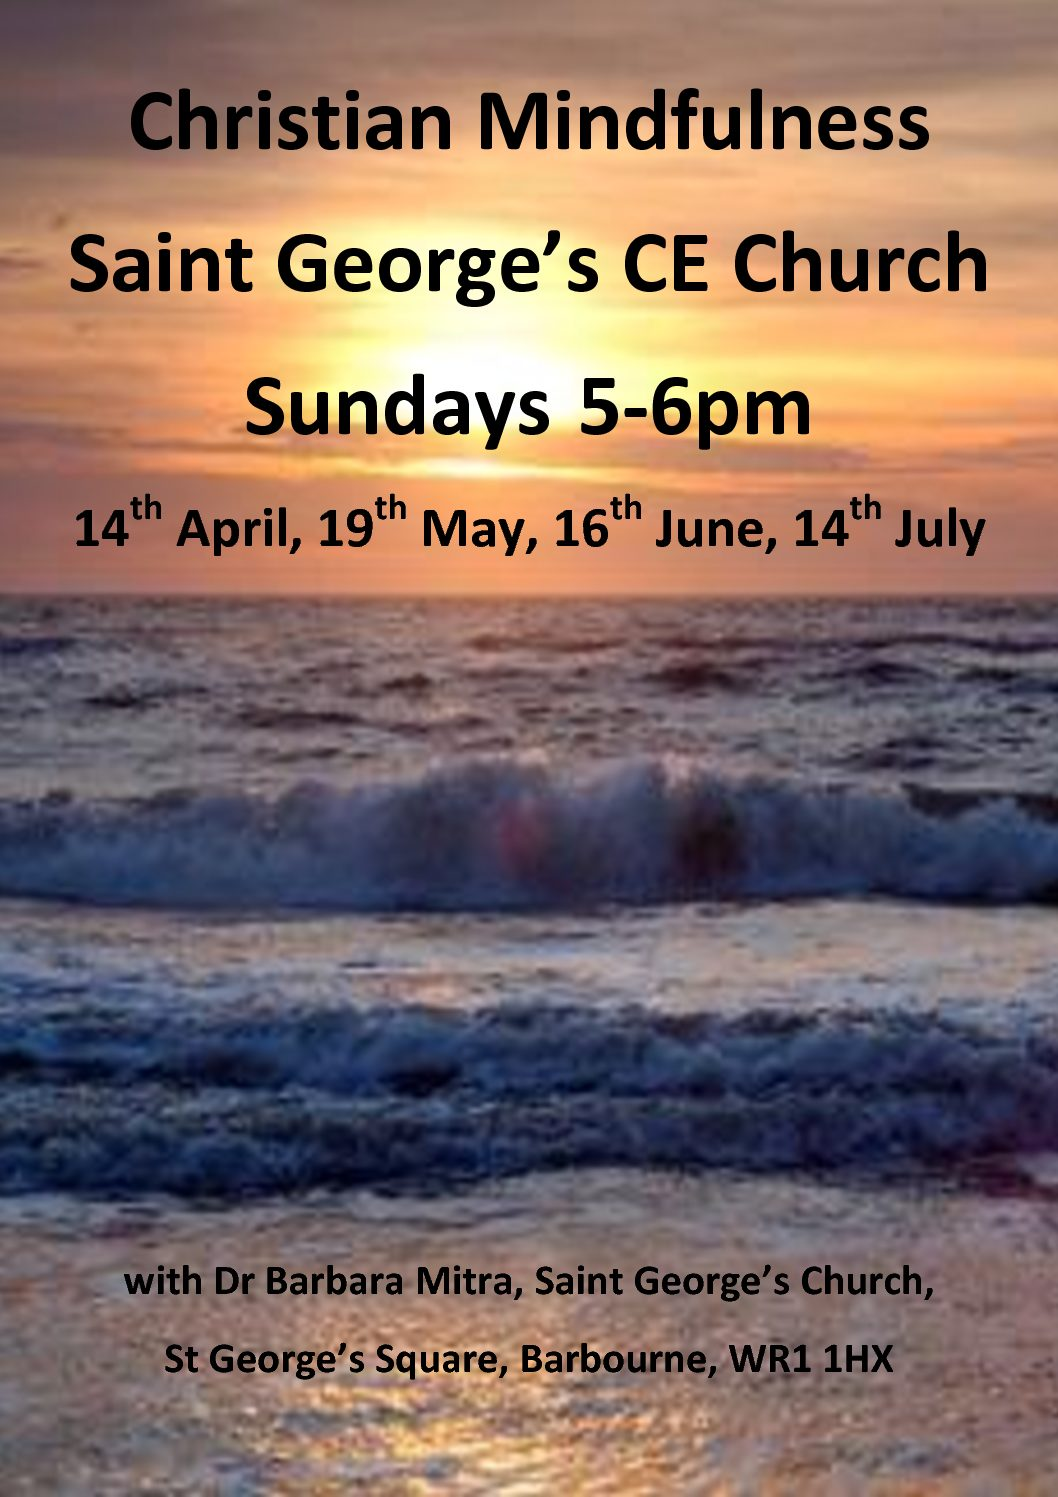 Christian Mindfulness Sunday 14th July 5-6pm